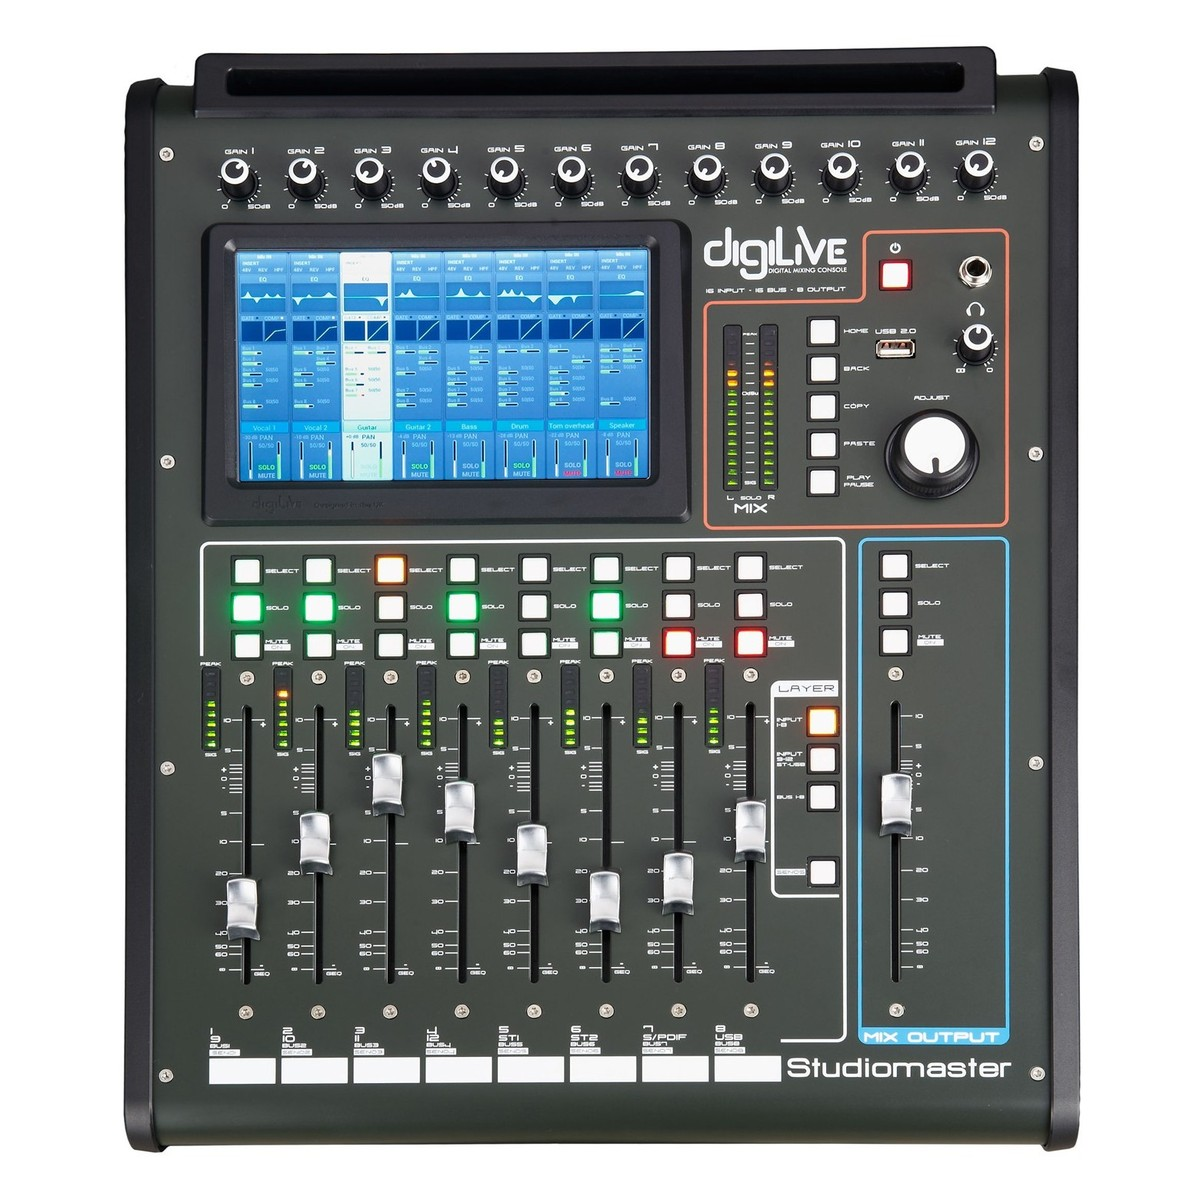 studiomaster digilive digital mixer at gear4music. Black Bedroom Furniture Sets. Home Design Ideas